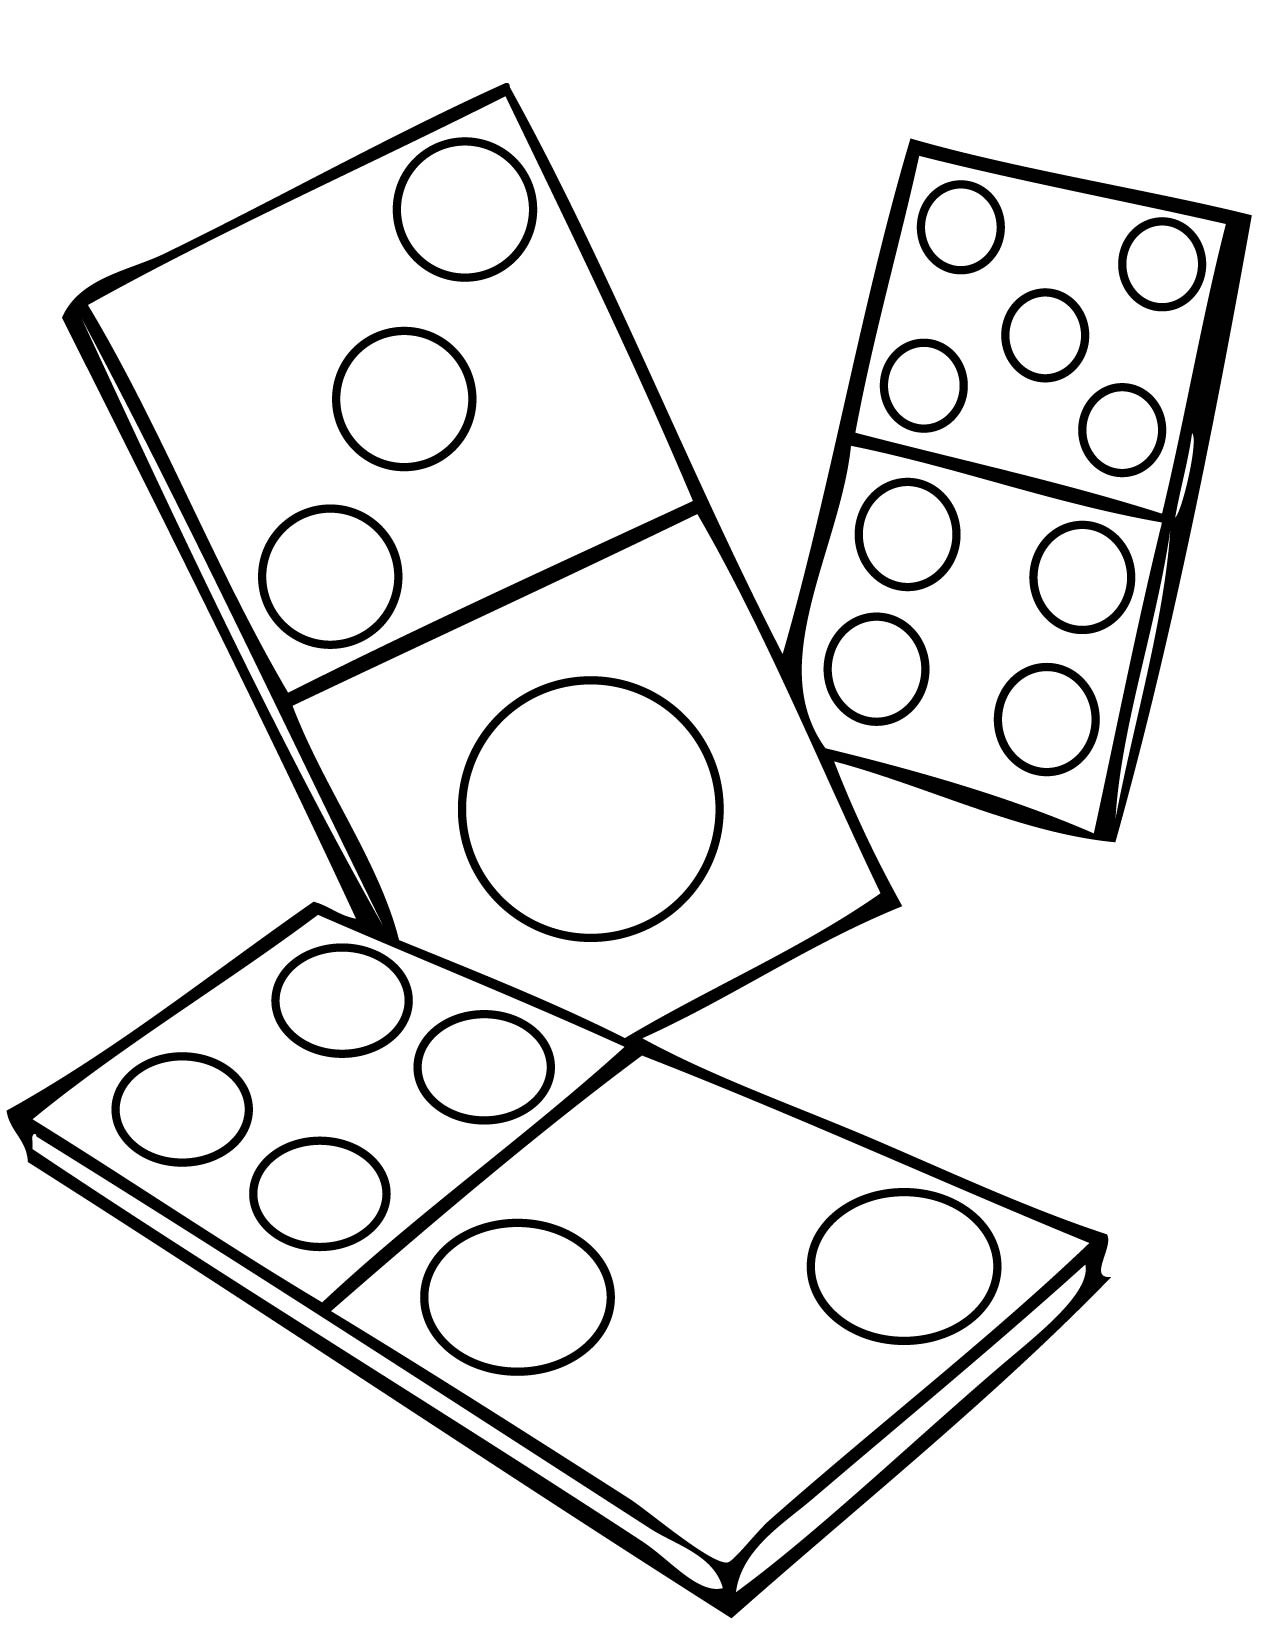 Tic Tac Toe Coloring Pages At Getdrawings